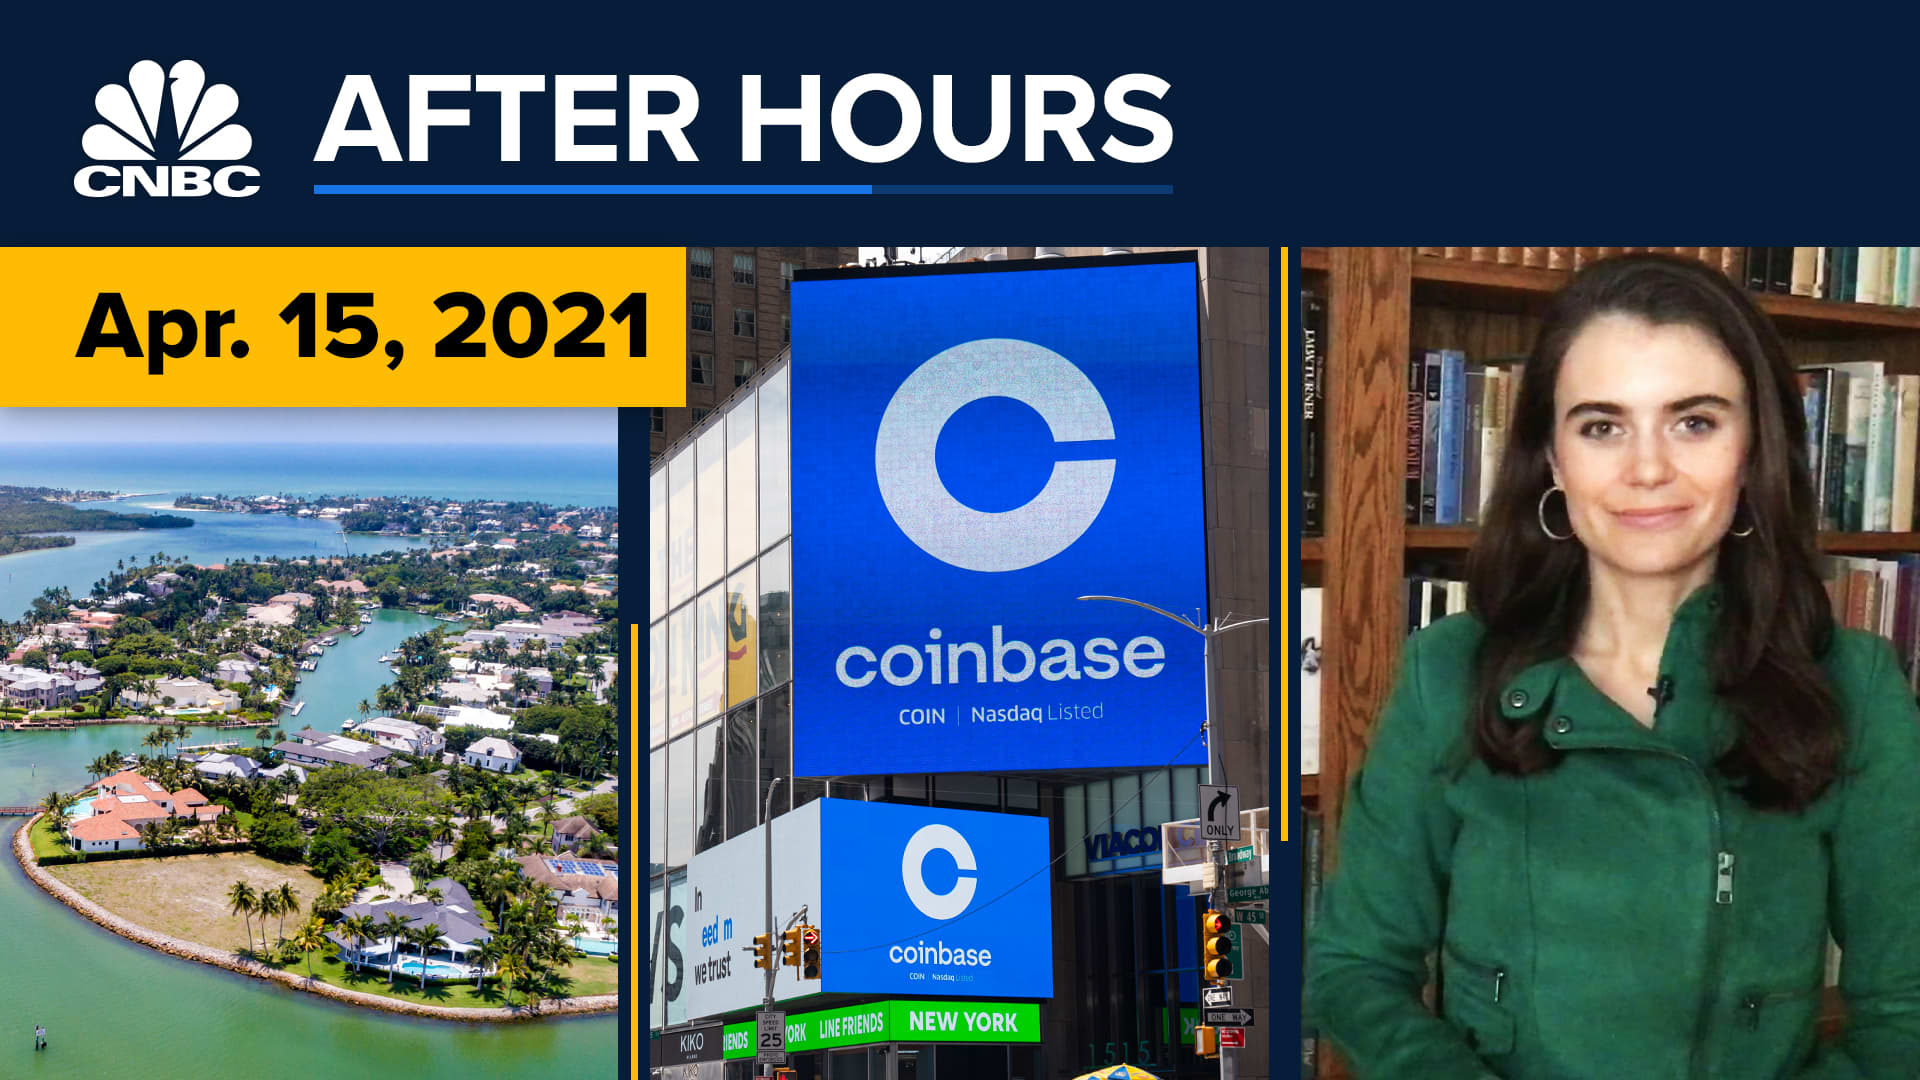 Coinbase's debut is monumental for the crypto industry, despite volatility